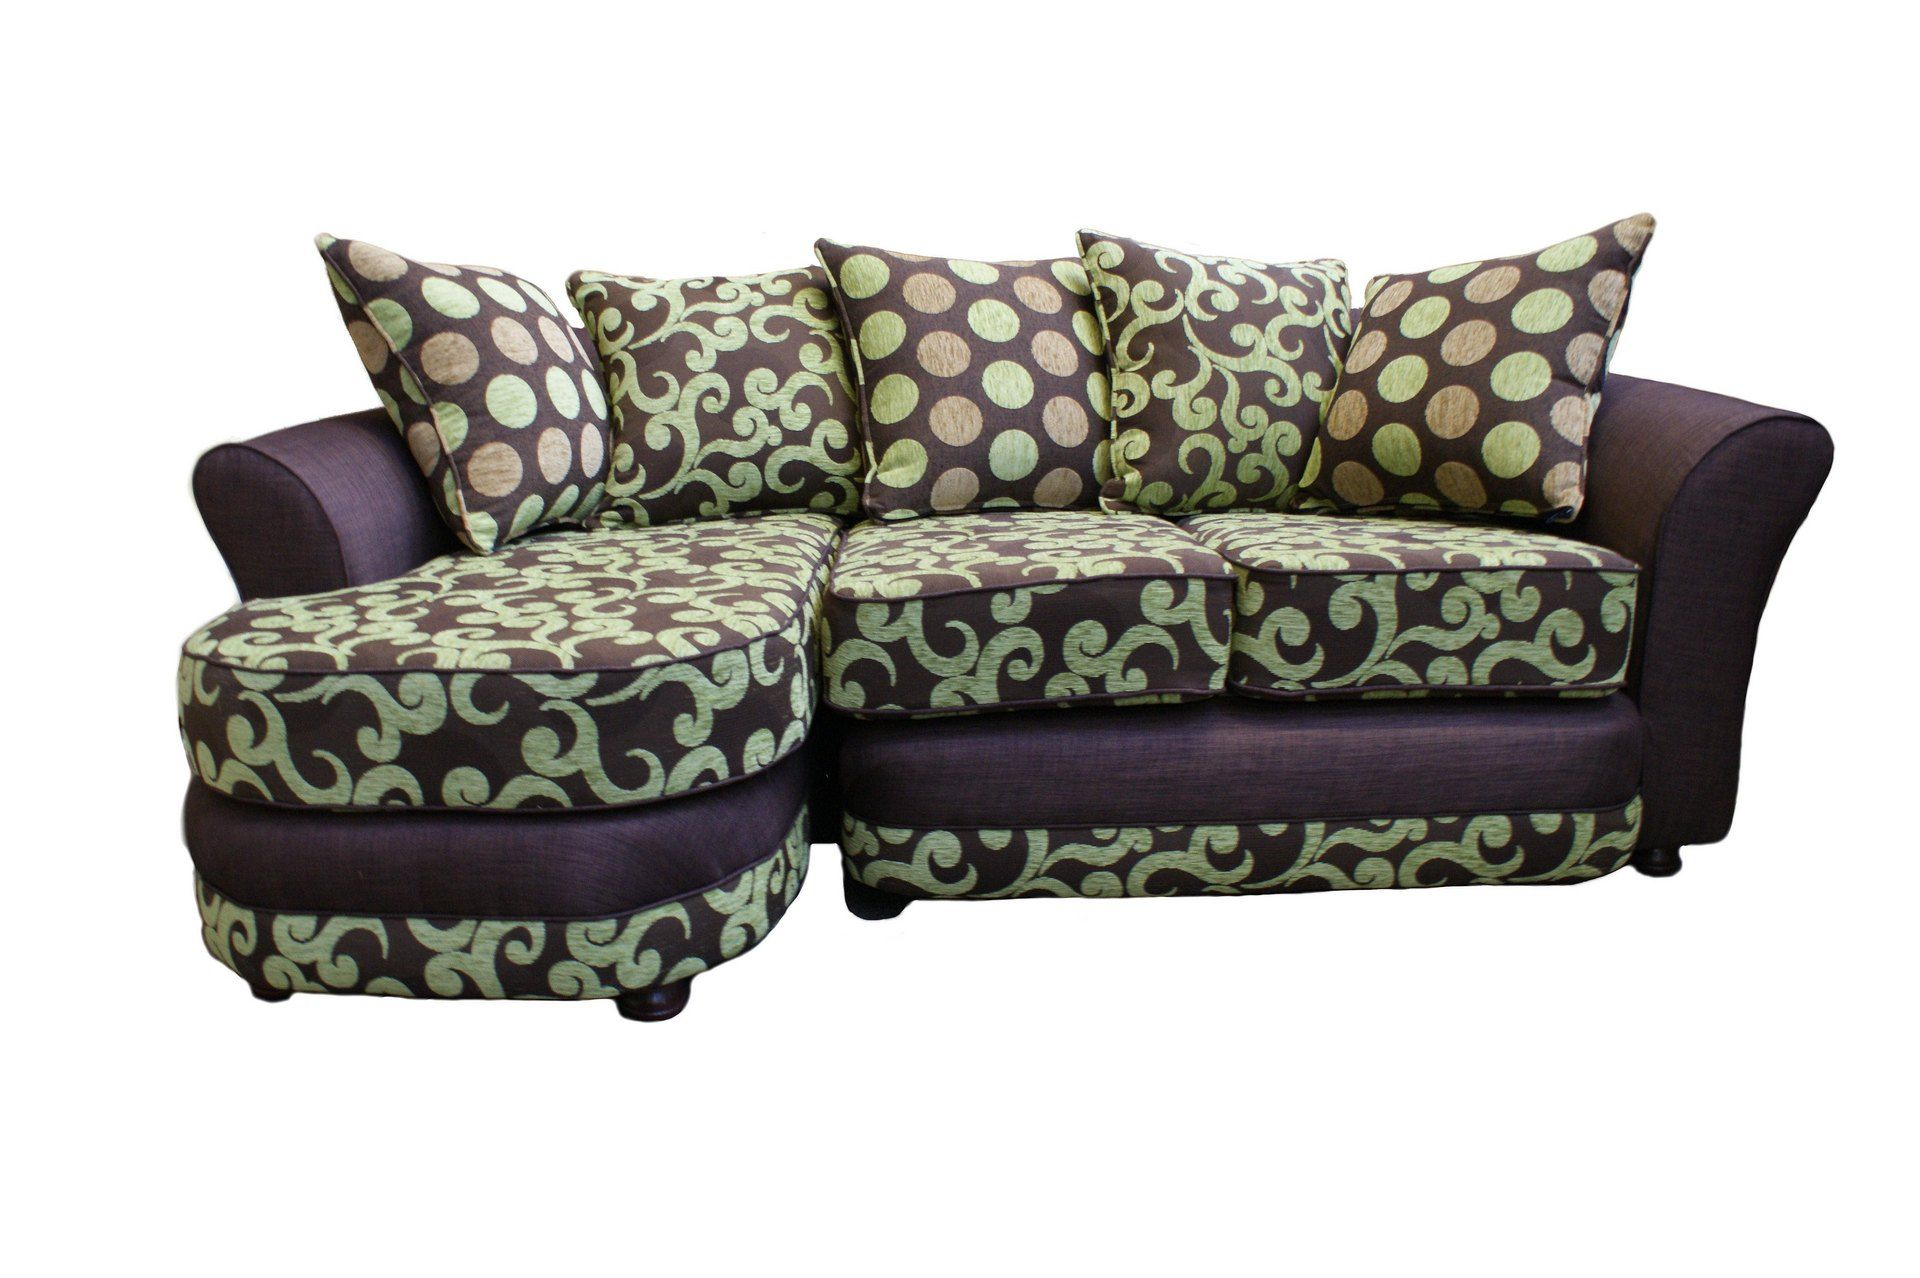 Cheap Sofas For Sale Get New Sofas By Just Sitting At Home With